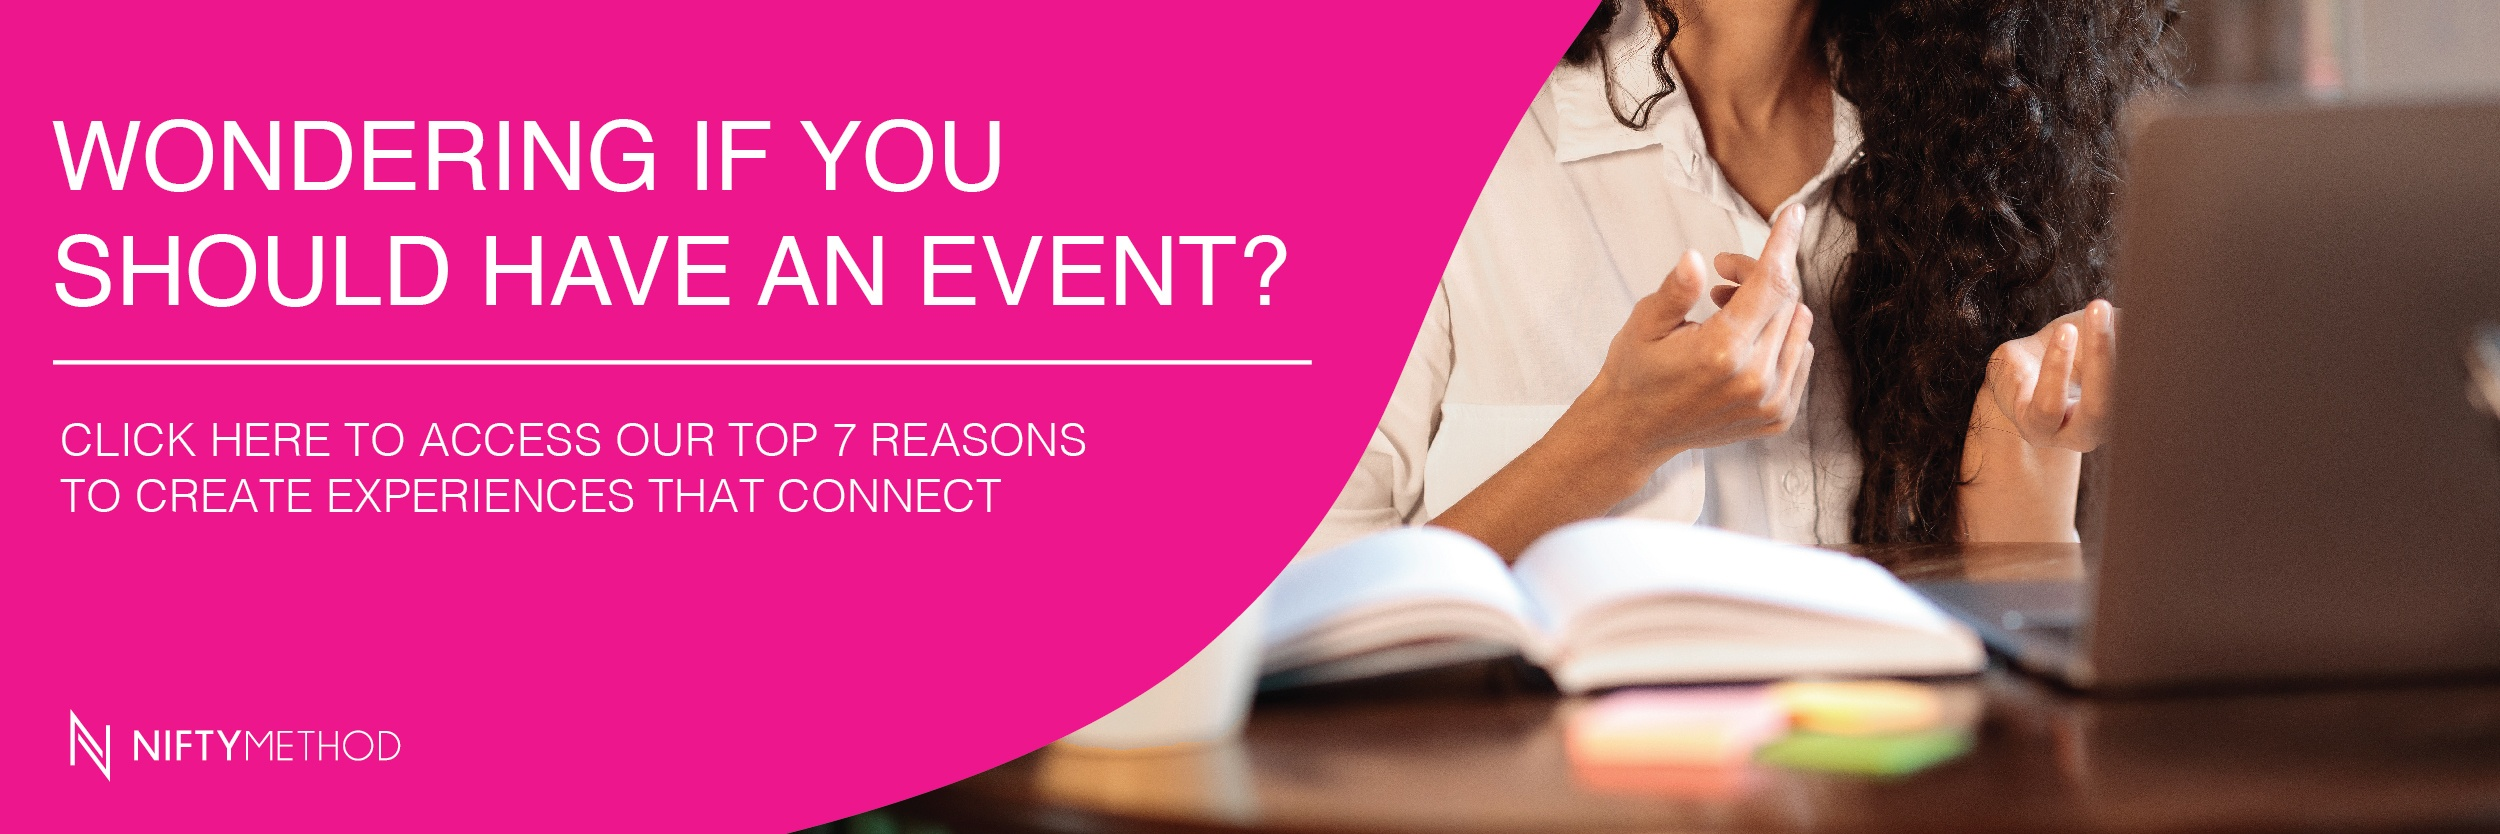 Access 7 reasons to have an event